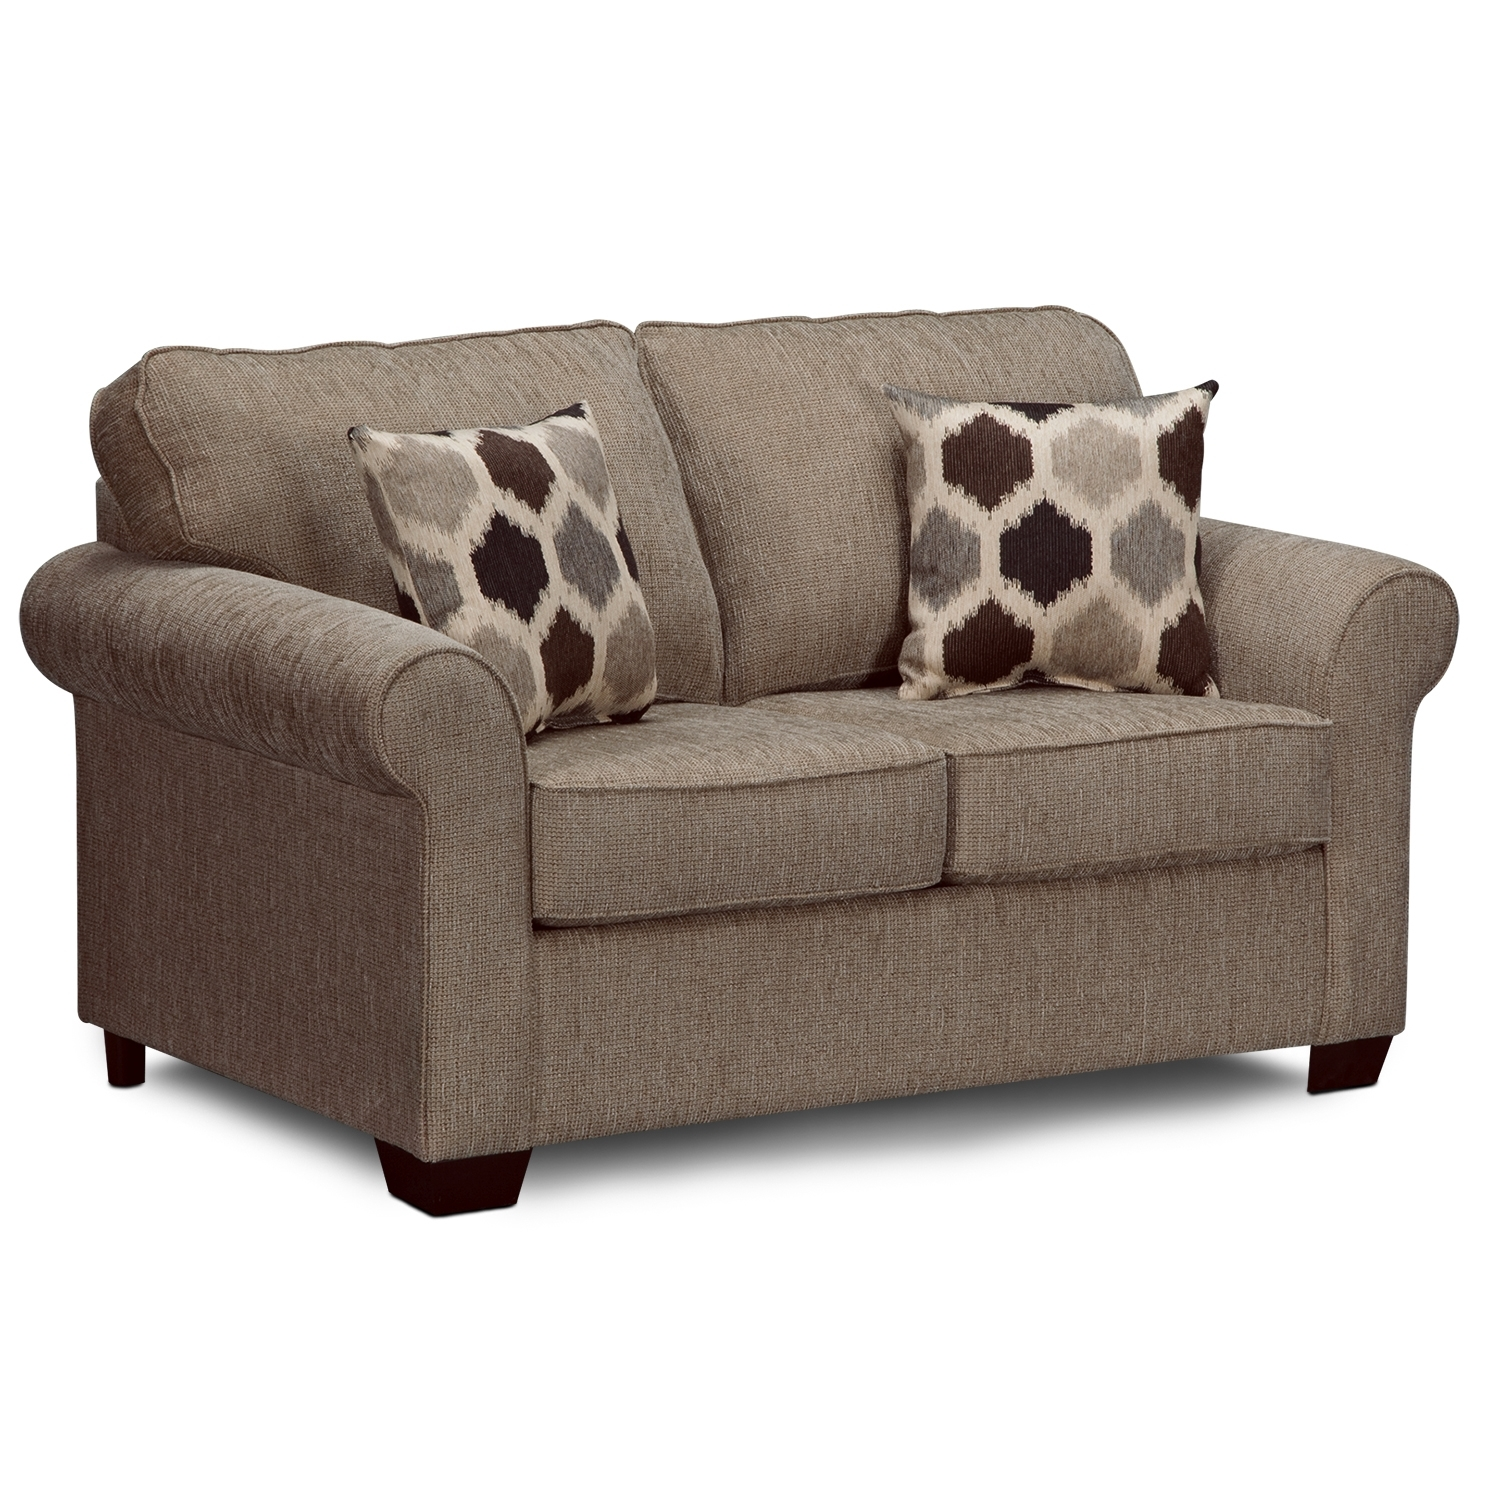 Sofas Center Shocking Twin Sleeper Sofa Chair Picture Regarding Twin Sofa Chairs (Image 9 of 15)